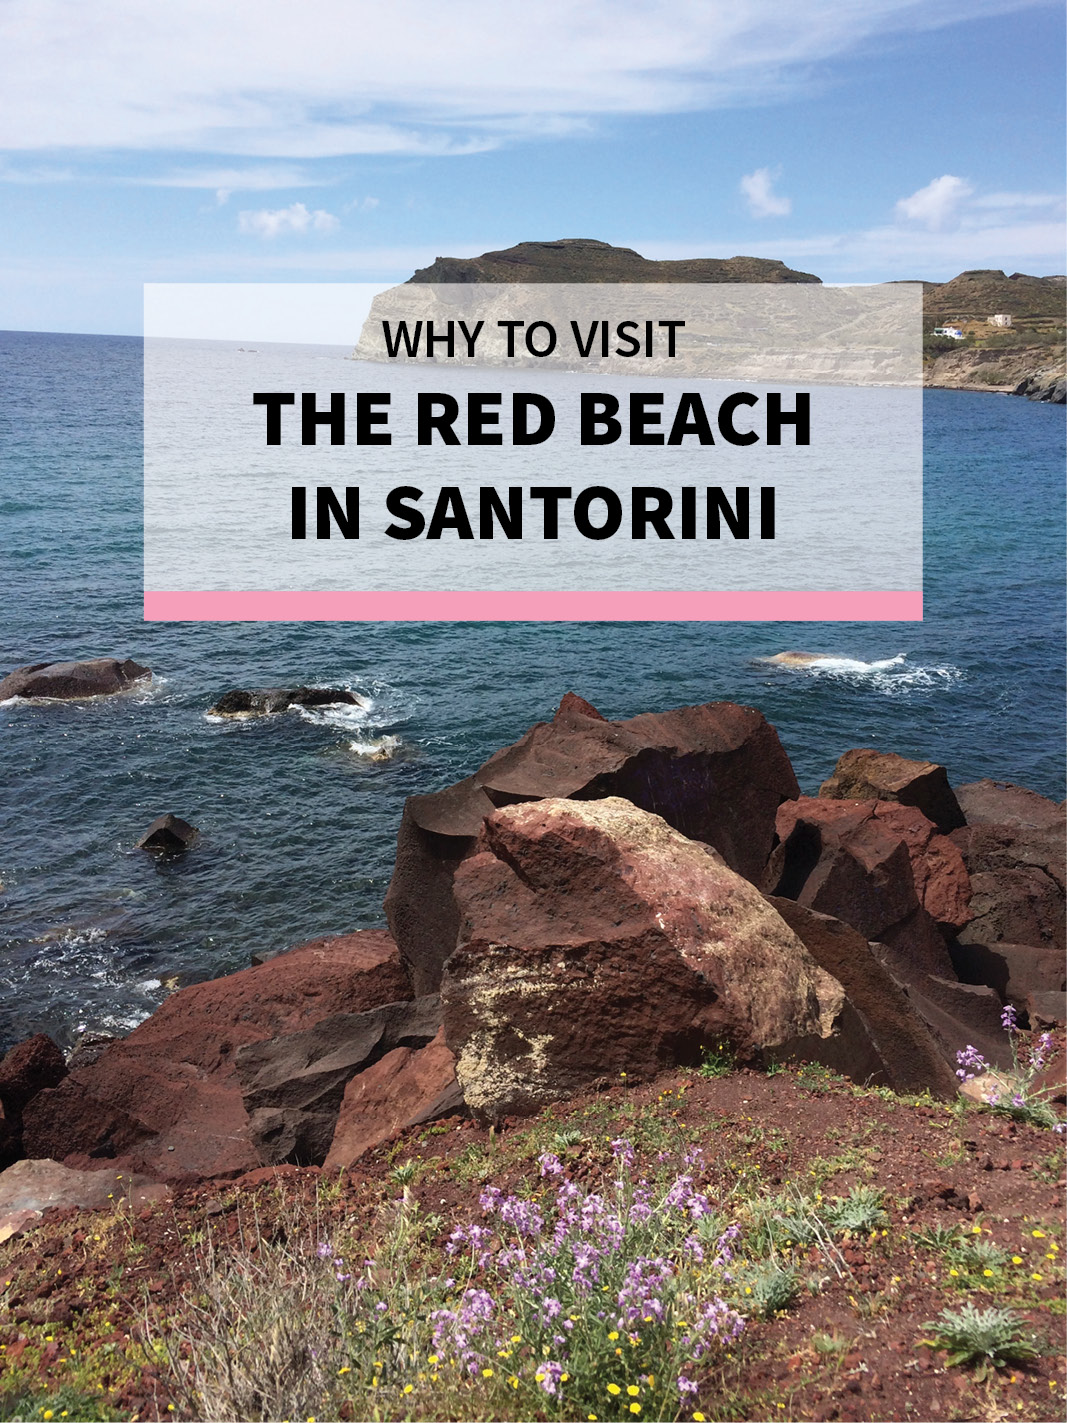 Why Visit the Red Beach in Santorini